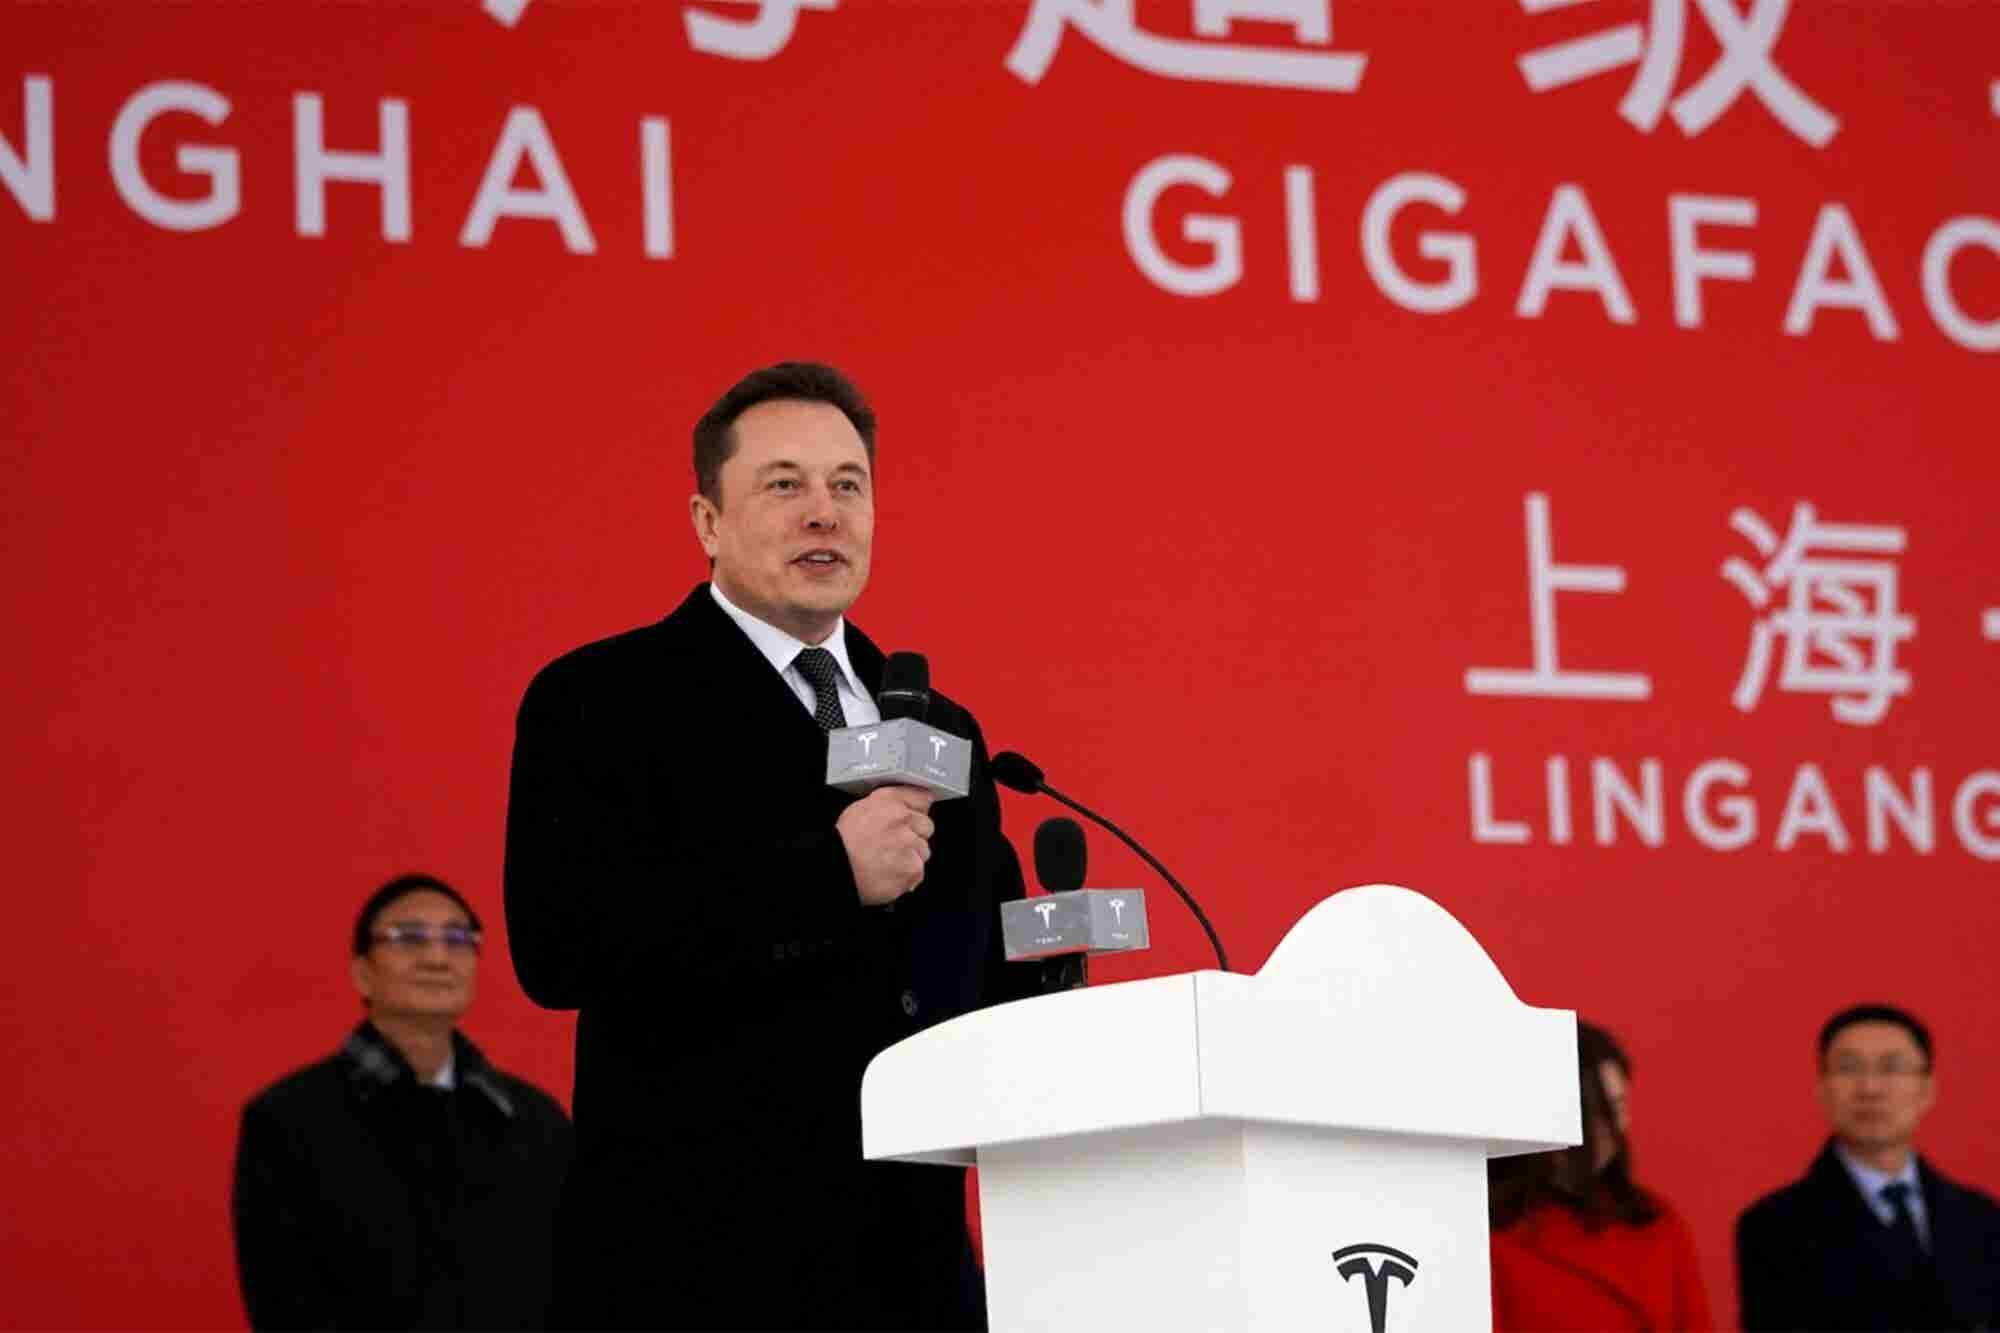 Elon Musk Has Started Building a Tesla Gigafactory in China, and It Could Let Him Dodge Trump's Trade War